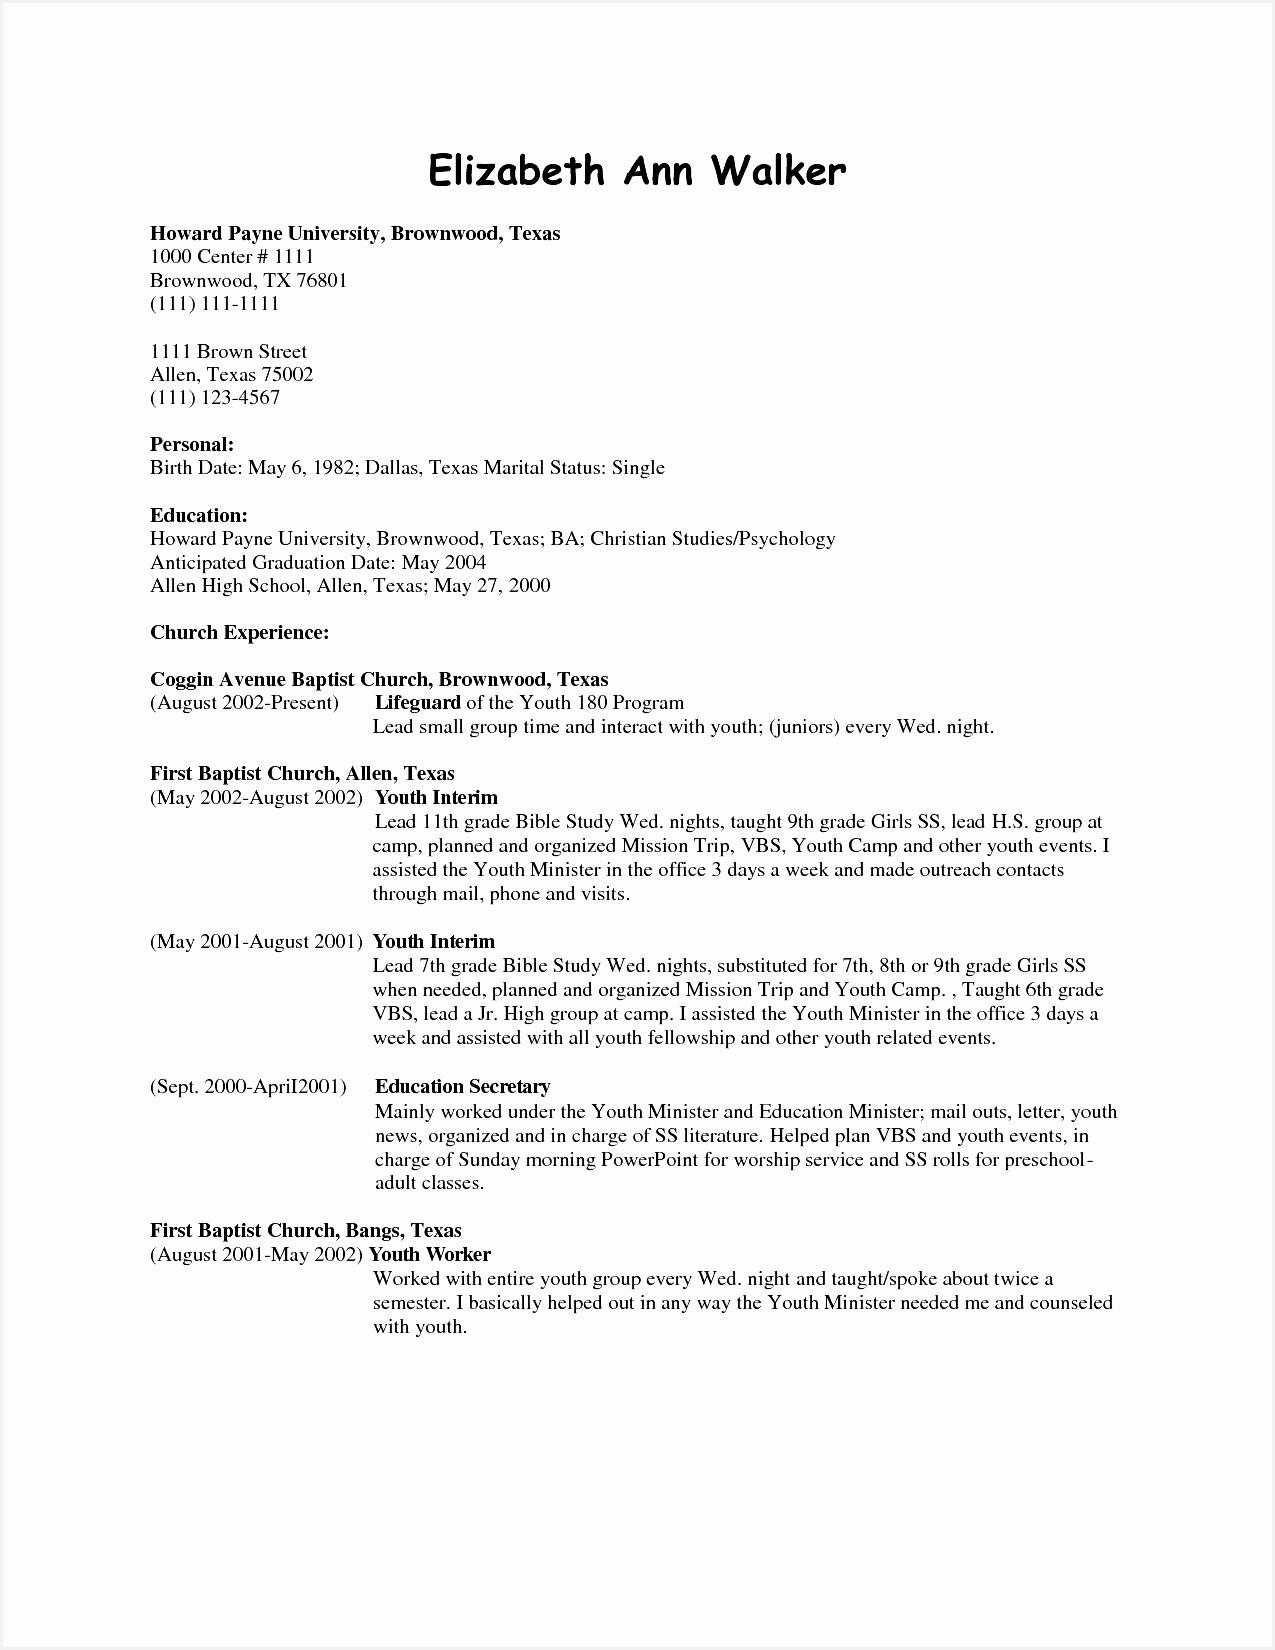 Church Resume Template Unique Outreach Worker Resume Kayskehauk Church Resume Template Beautiful Update My Resume16501275